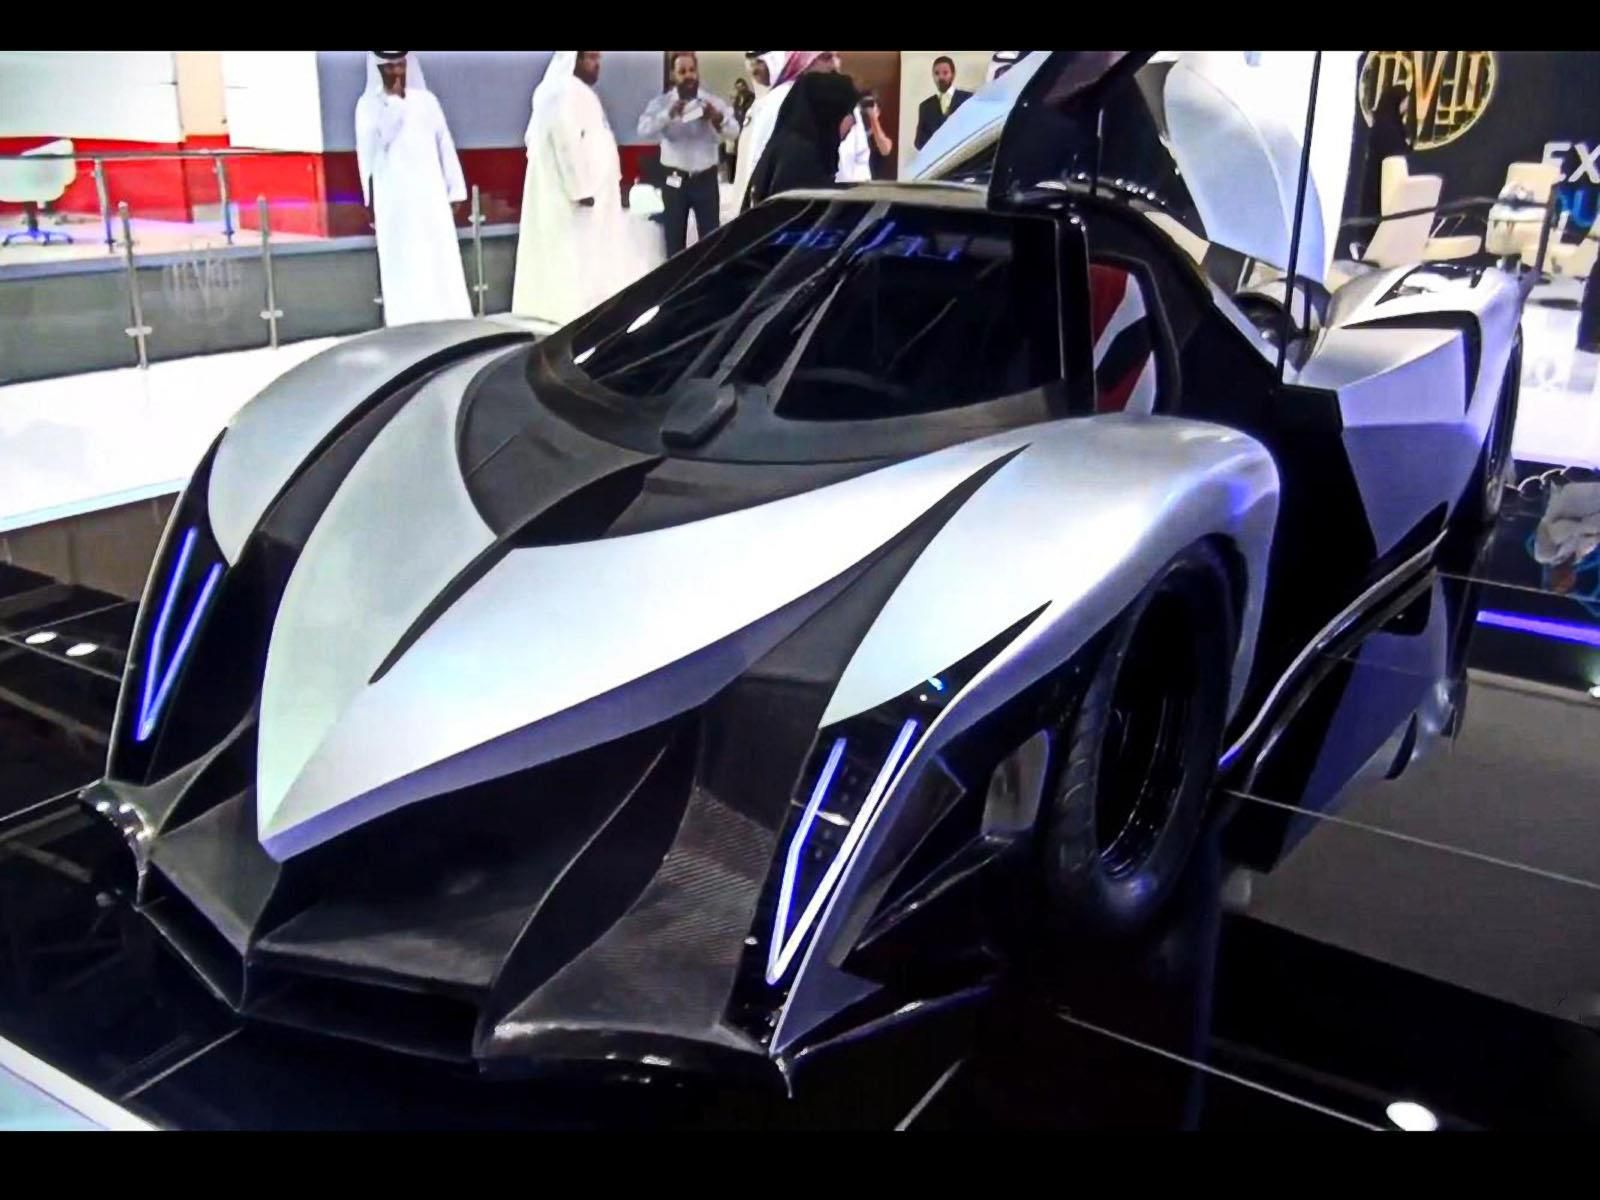 Devel Sixteen CV A Kmh Autocosmoscom Carts And - Cool cars 5000